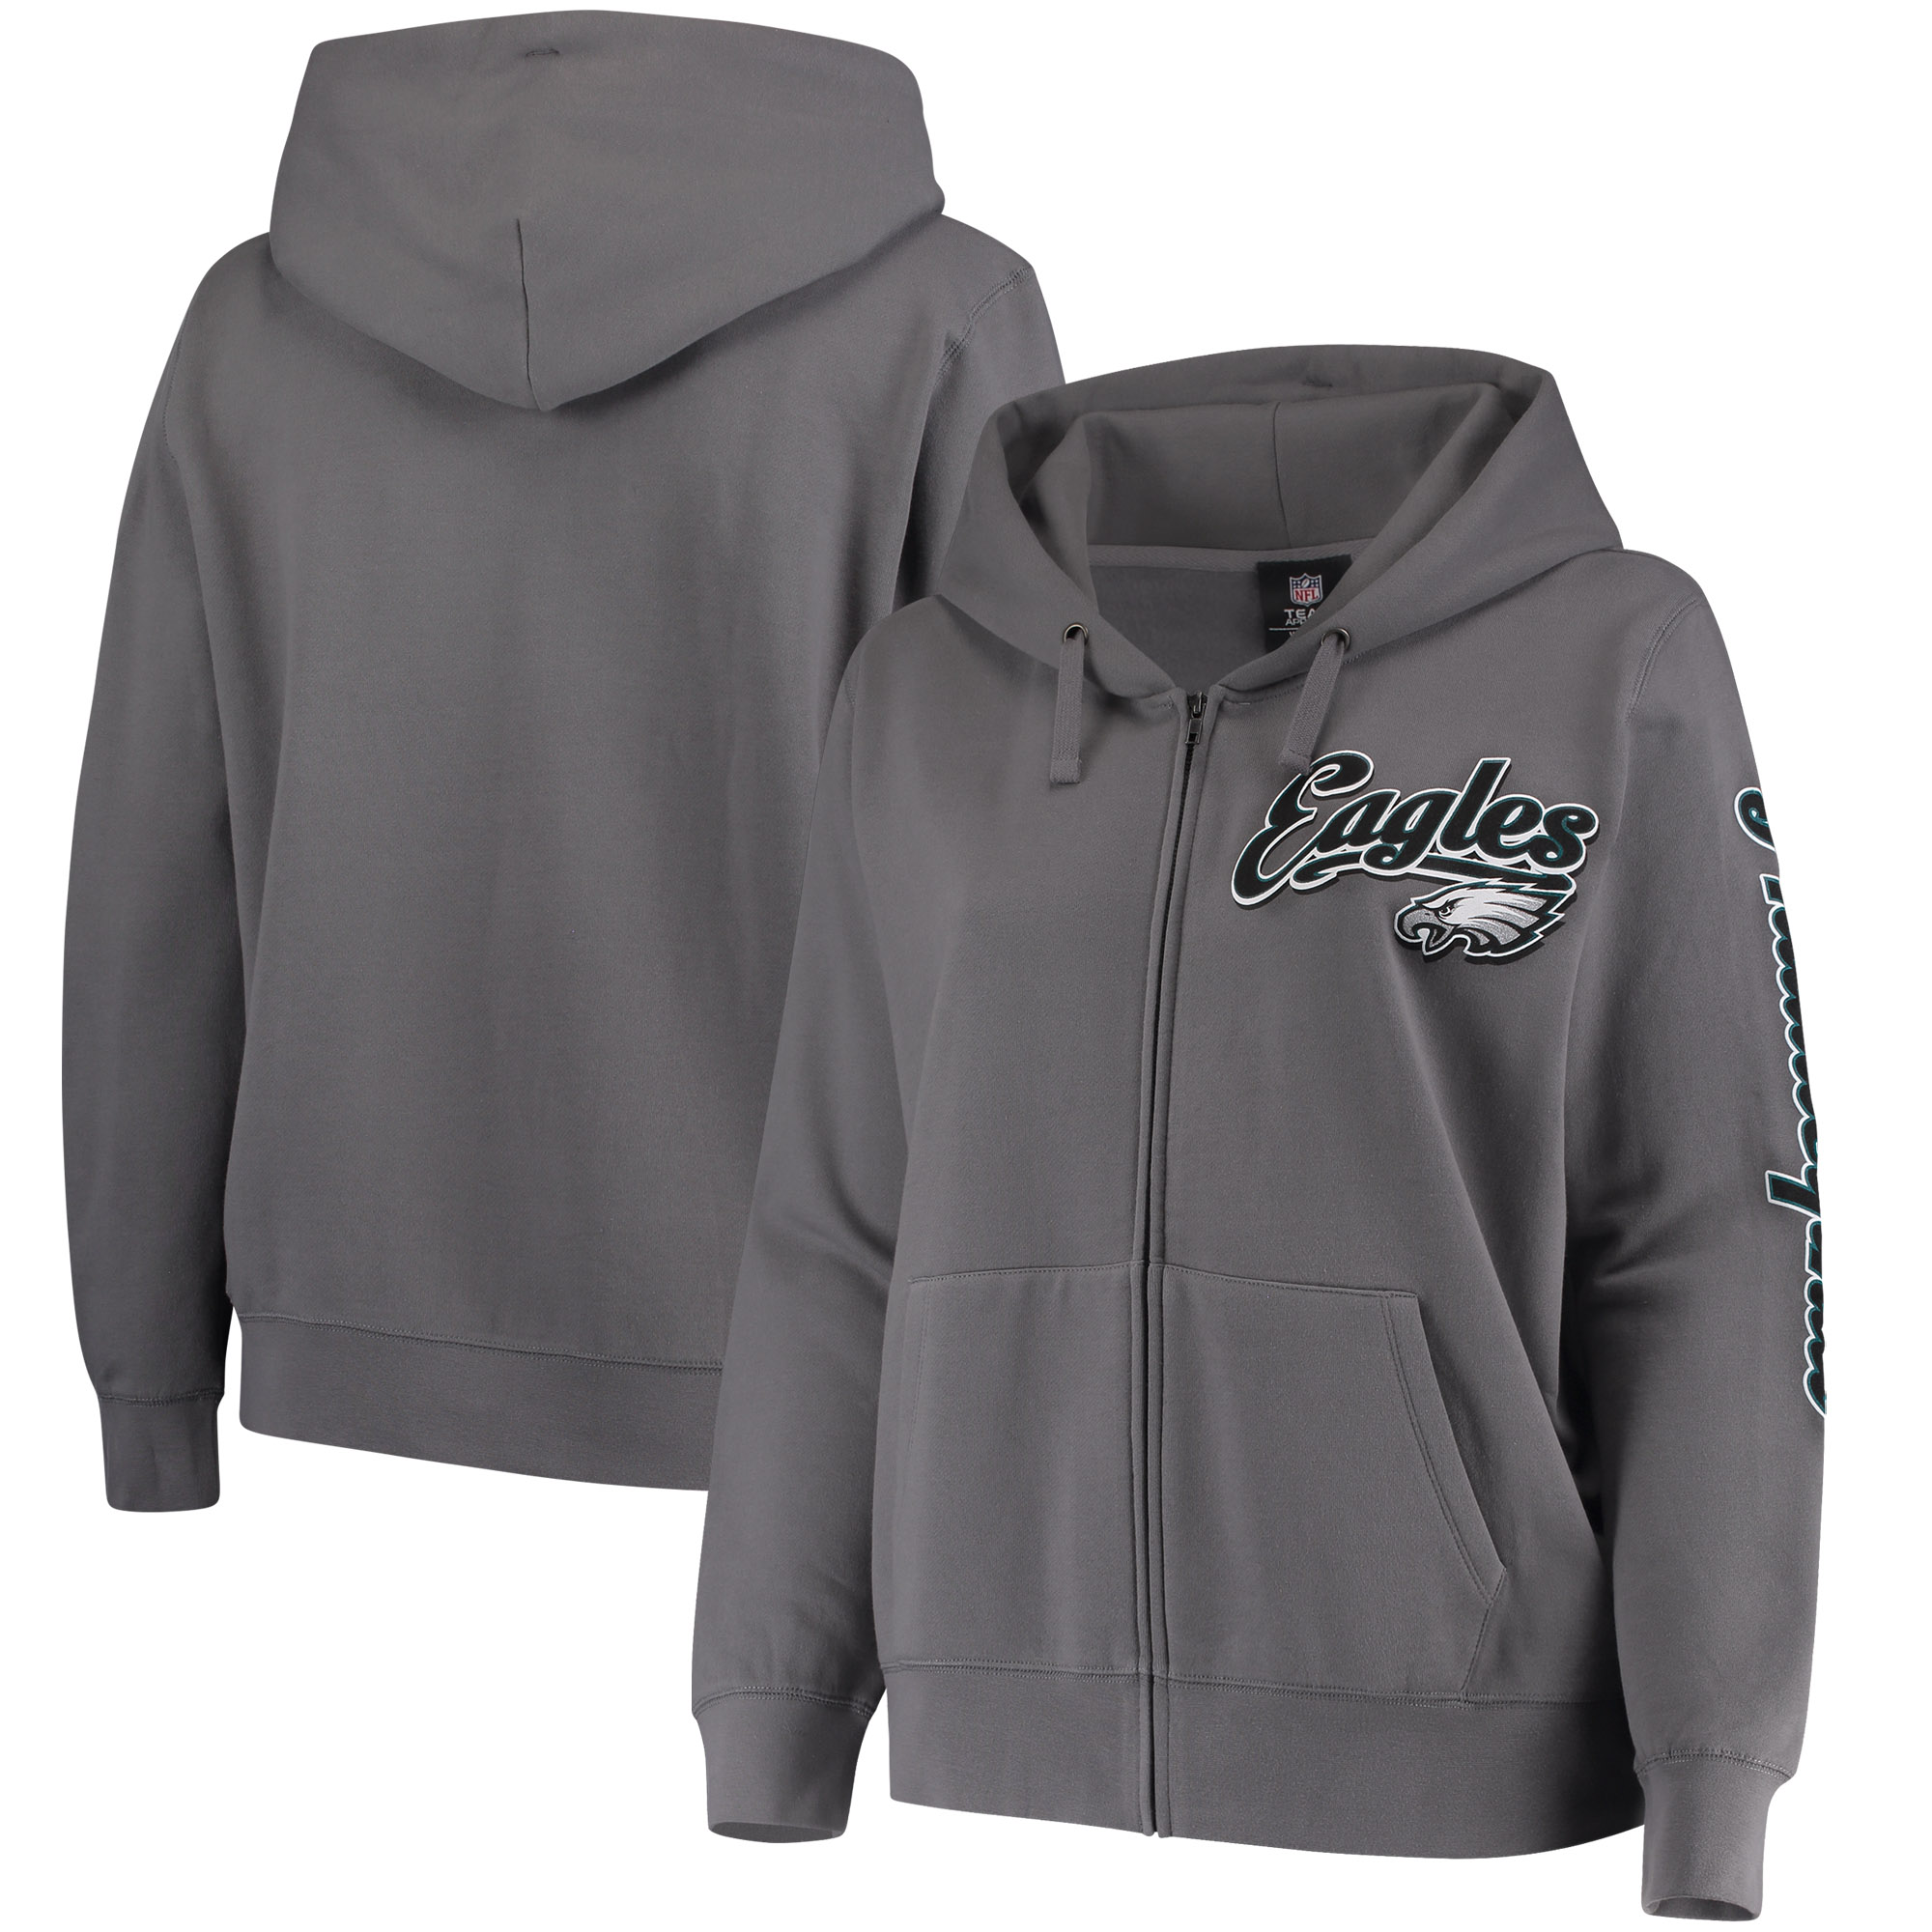 Philadelphia Eagles 5th & Ocean by New Era Women's Plus Size Script Full-Zip Hoodie - Charcoal